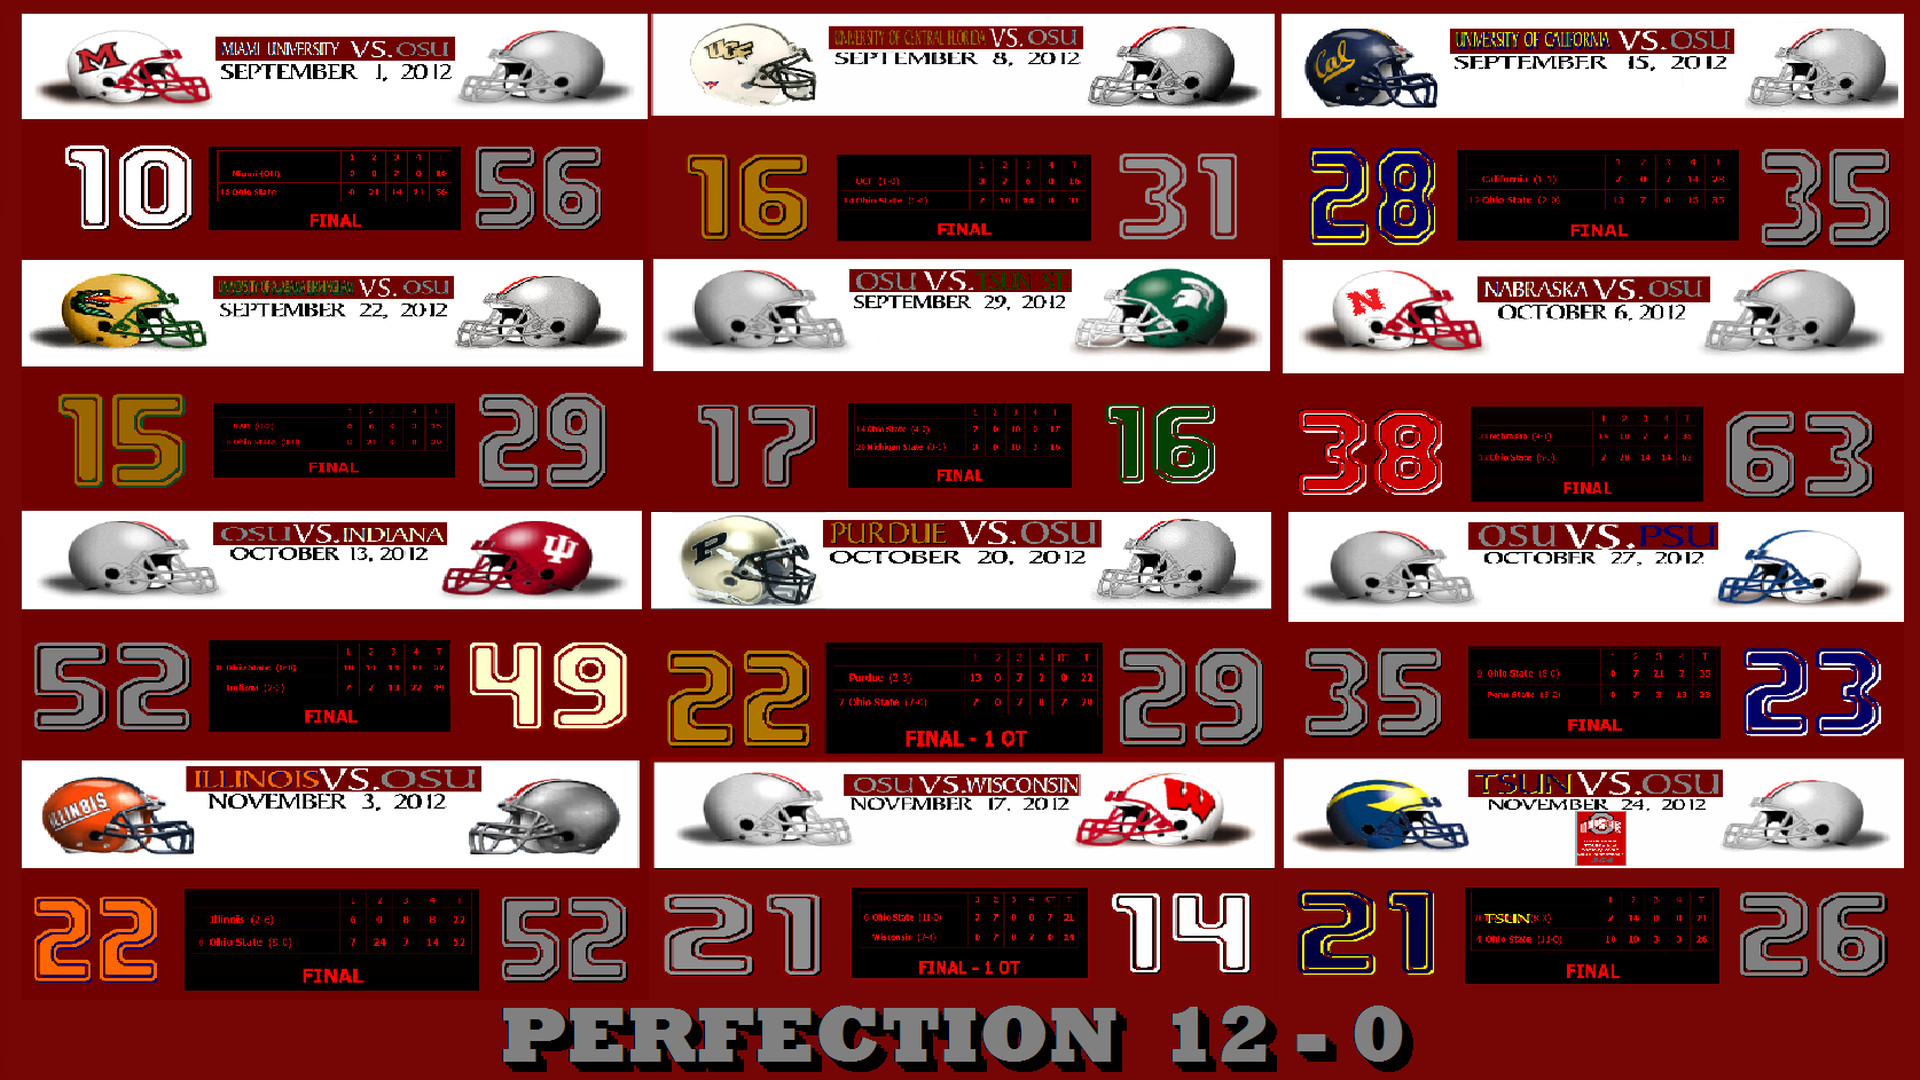 1920x1080 ... PERFECTION 12-0 - Ohio State Football Wallpaper (32900069) - Fanpop ...